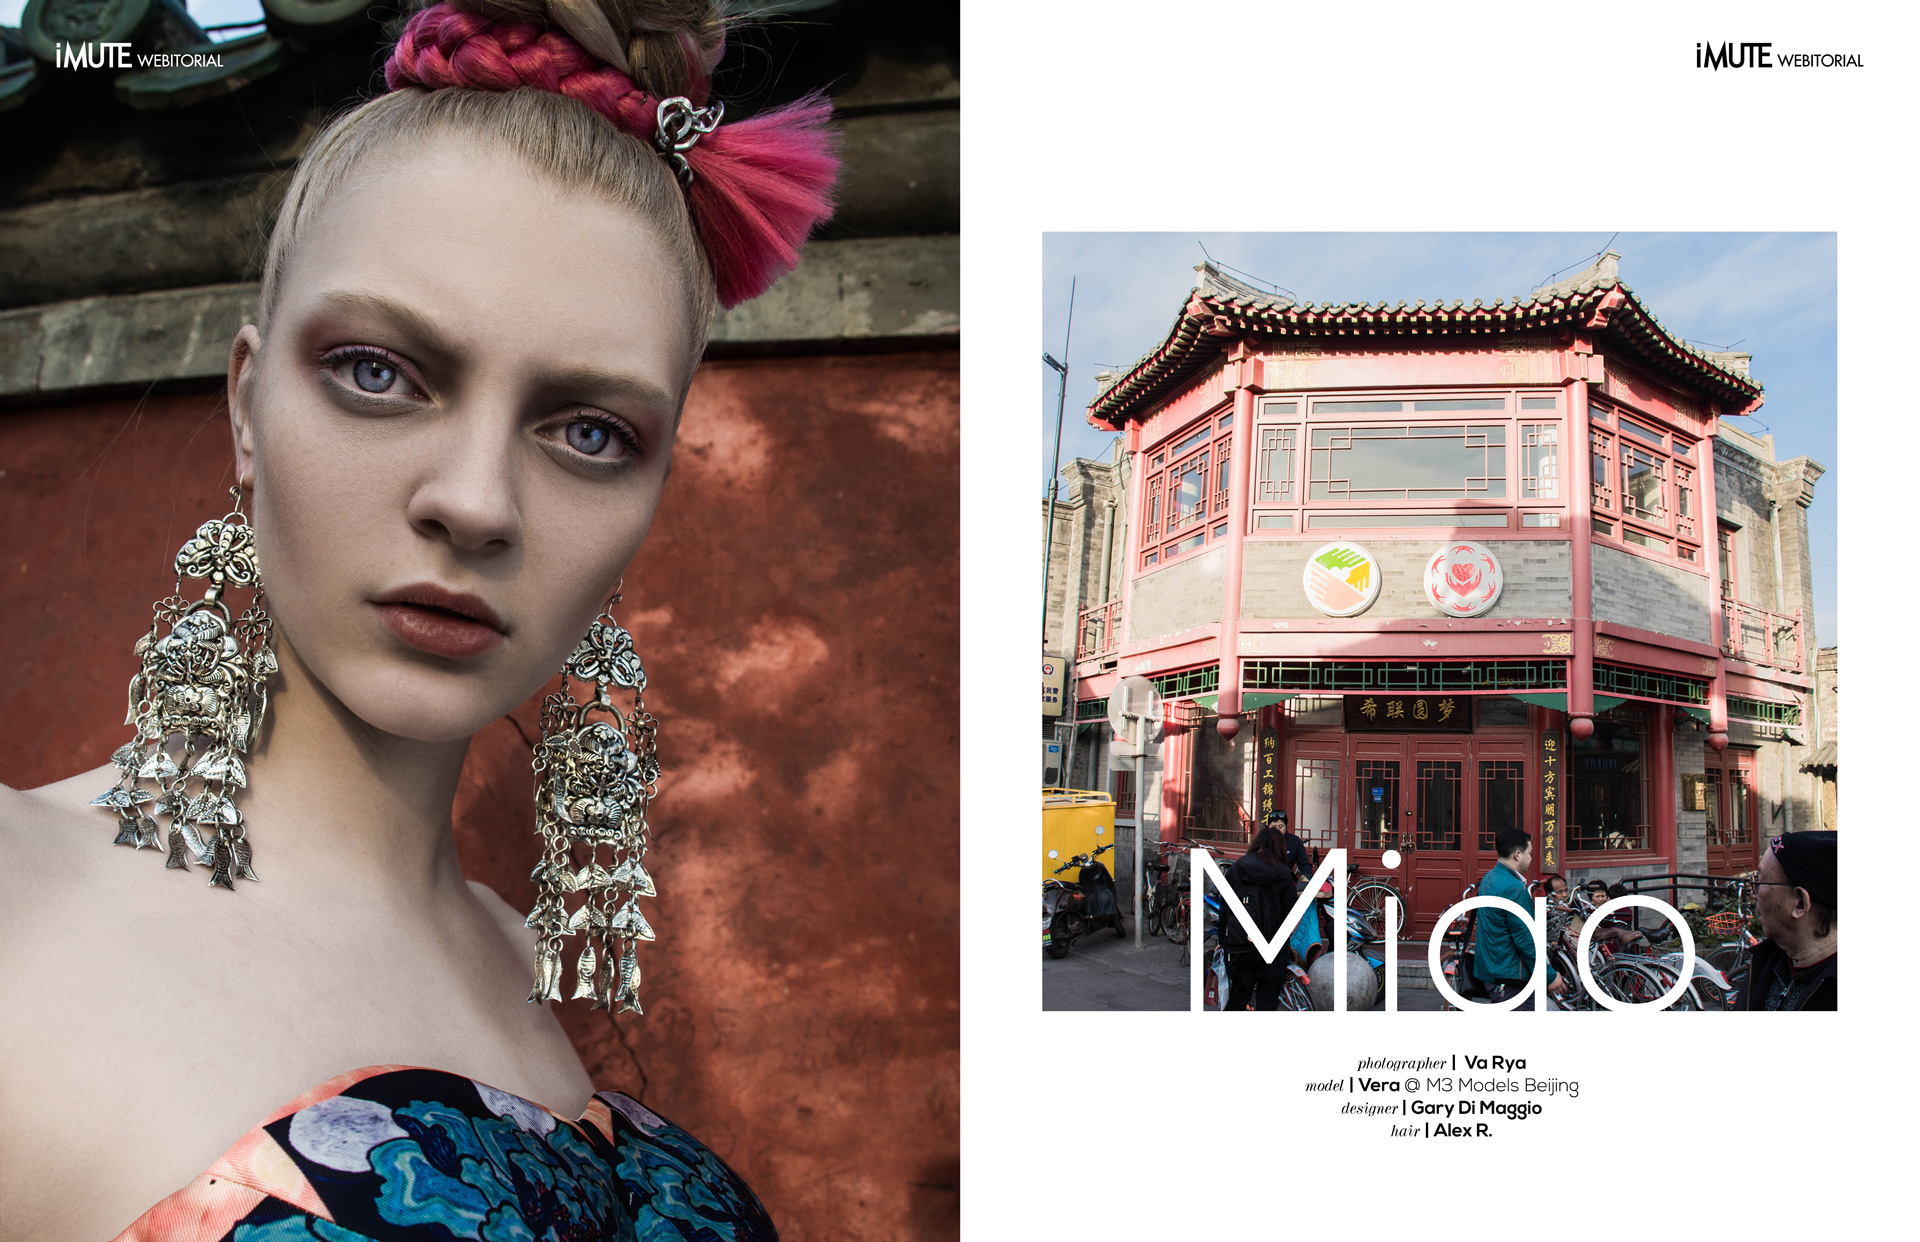 Miao webitorial for iMute Magazine Photographer | Va Rya Model | Vera @ M3 Models Beijing Designer |  Gary Di Maggio Hair | Alex R.